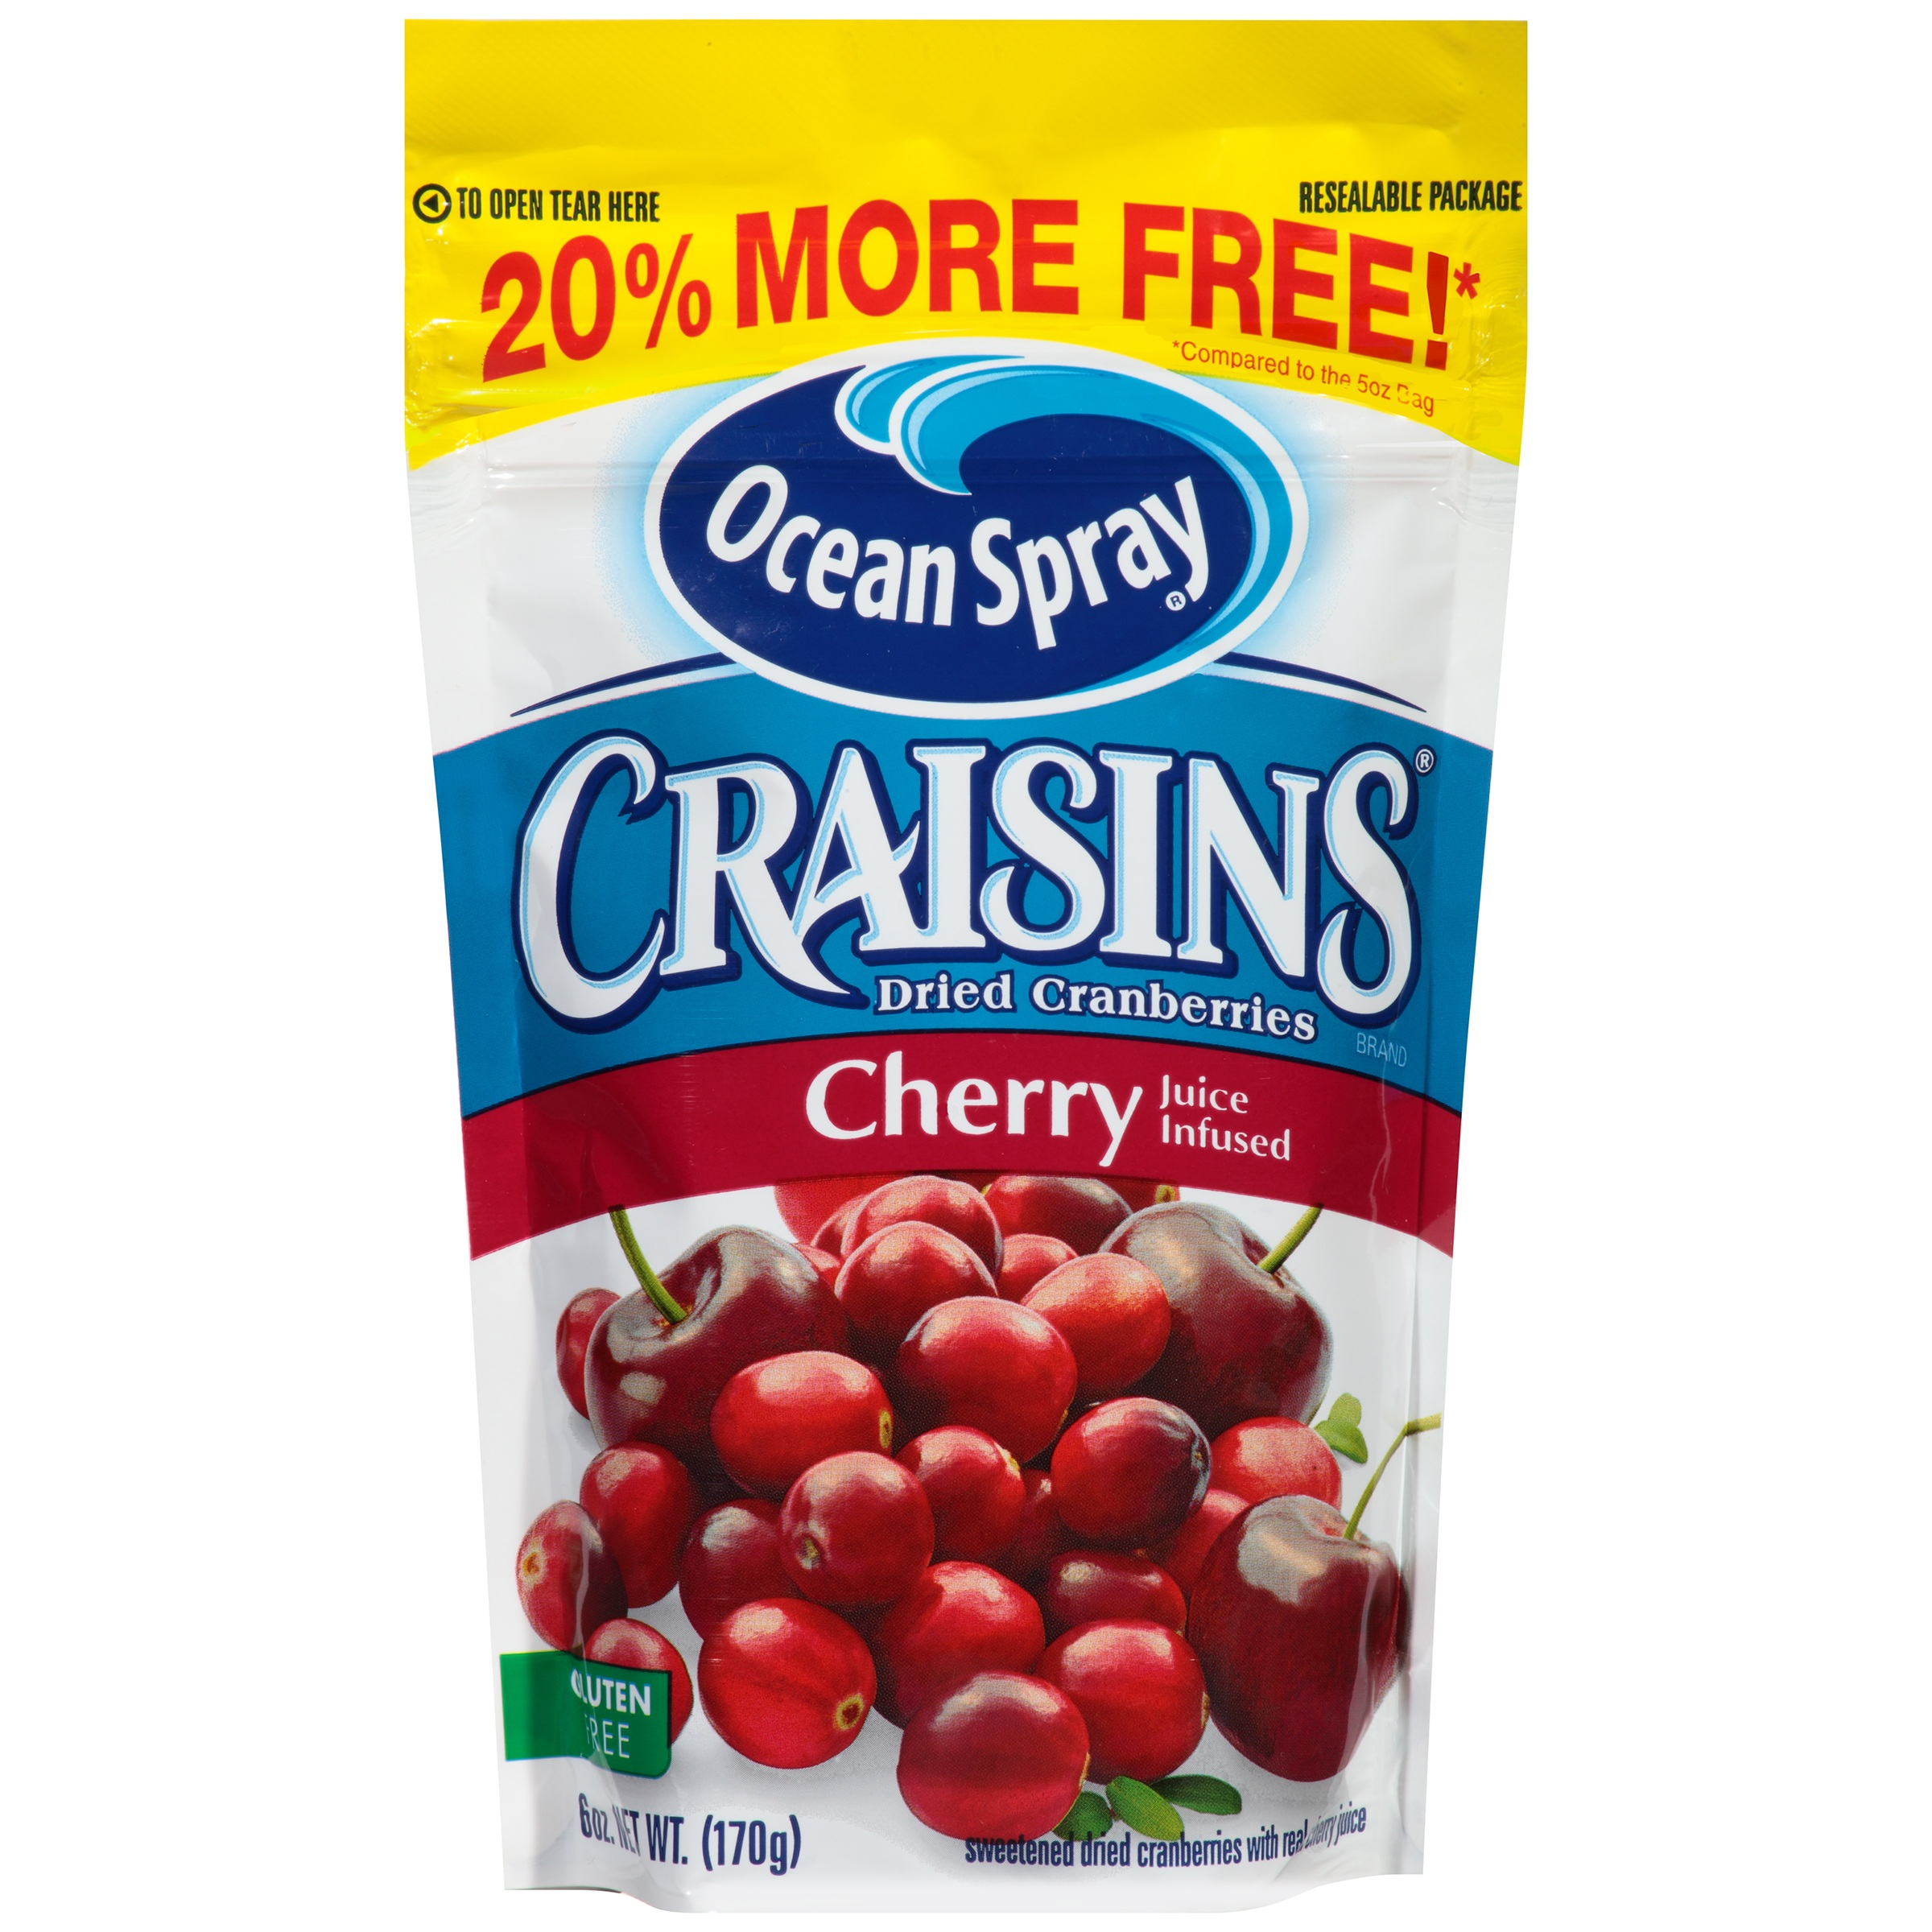 Ocean Spray Craisins Cherry 5 Oz by Ocean Spray Cranberries, Inc.